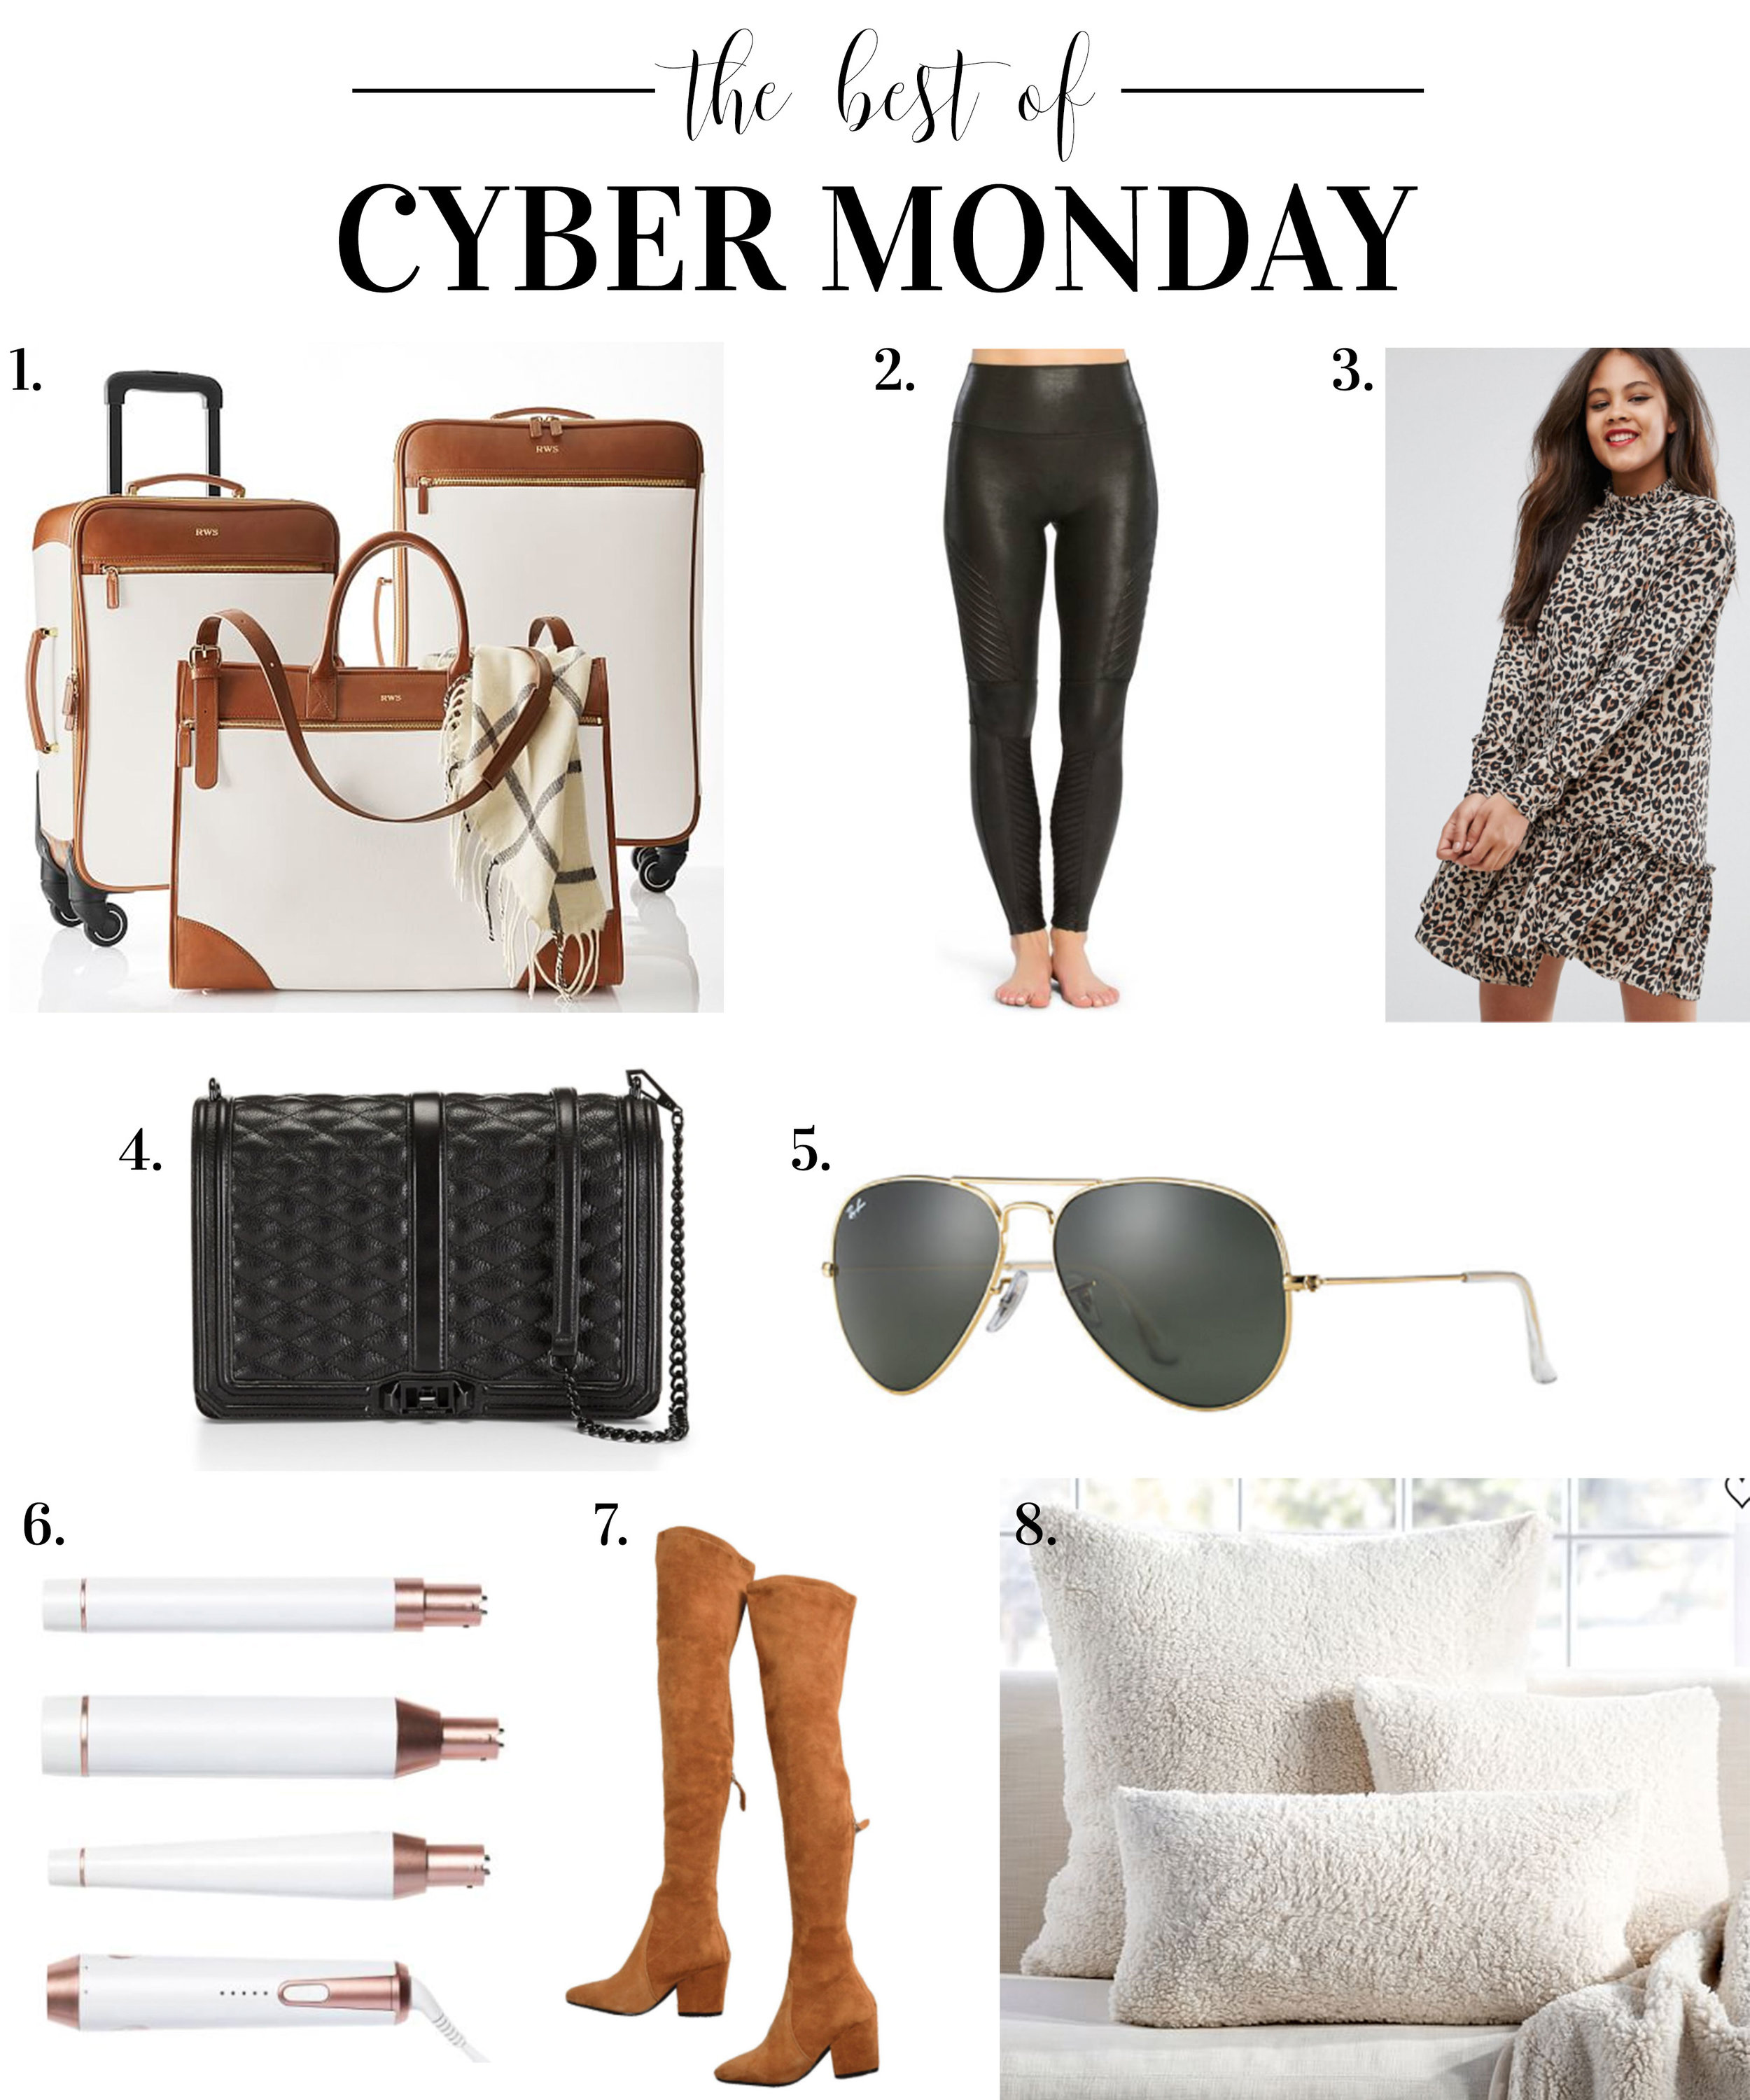 Best Websites To Shop For Shoes On Cyber Monday